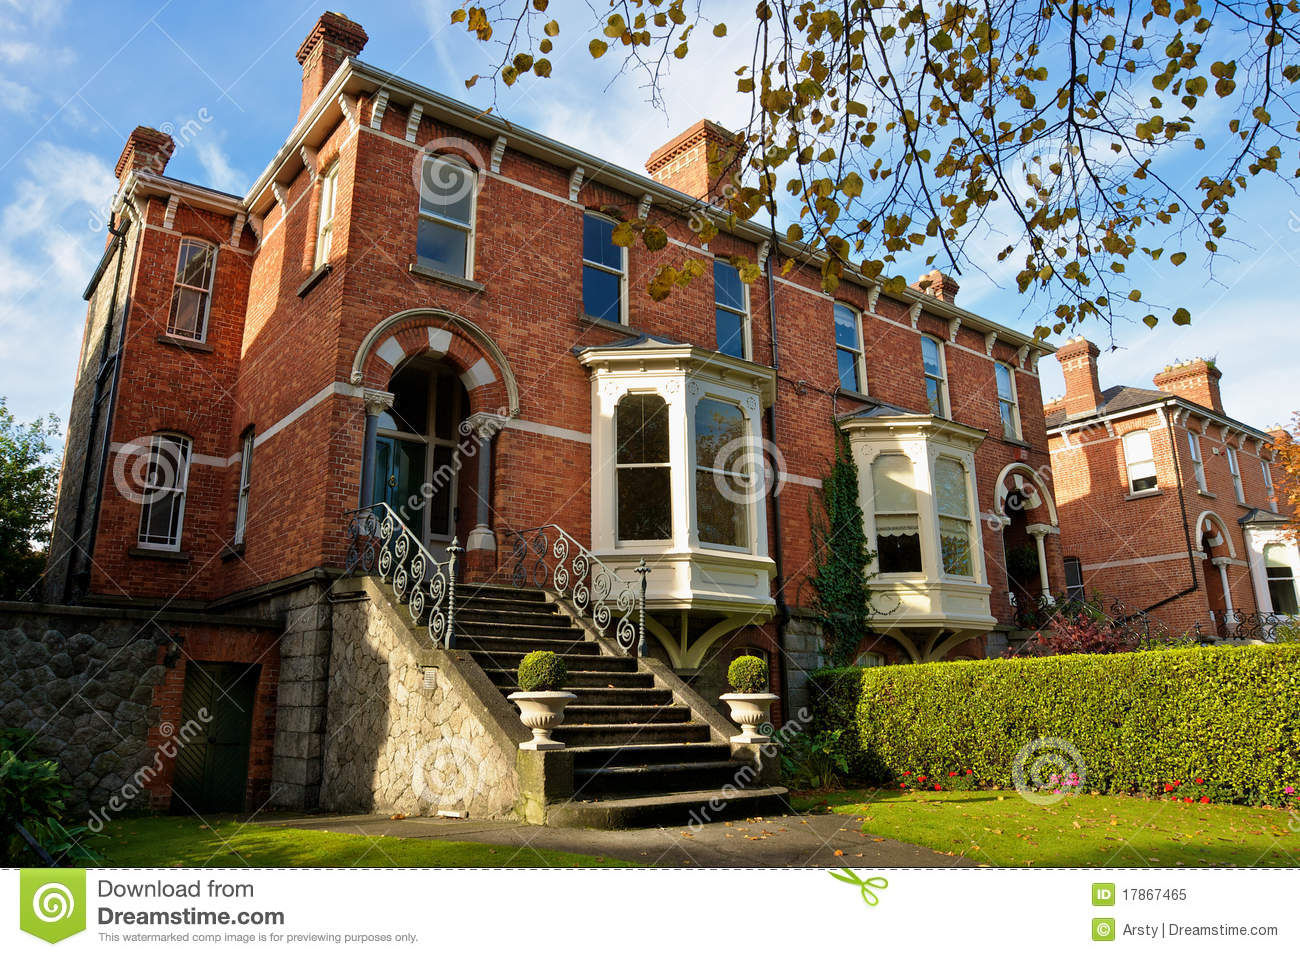 Dublin houses ireland stock image image of exterior for Classic house green street dublin 7